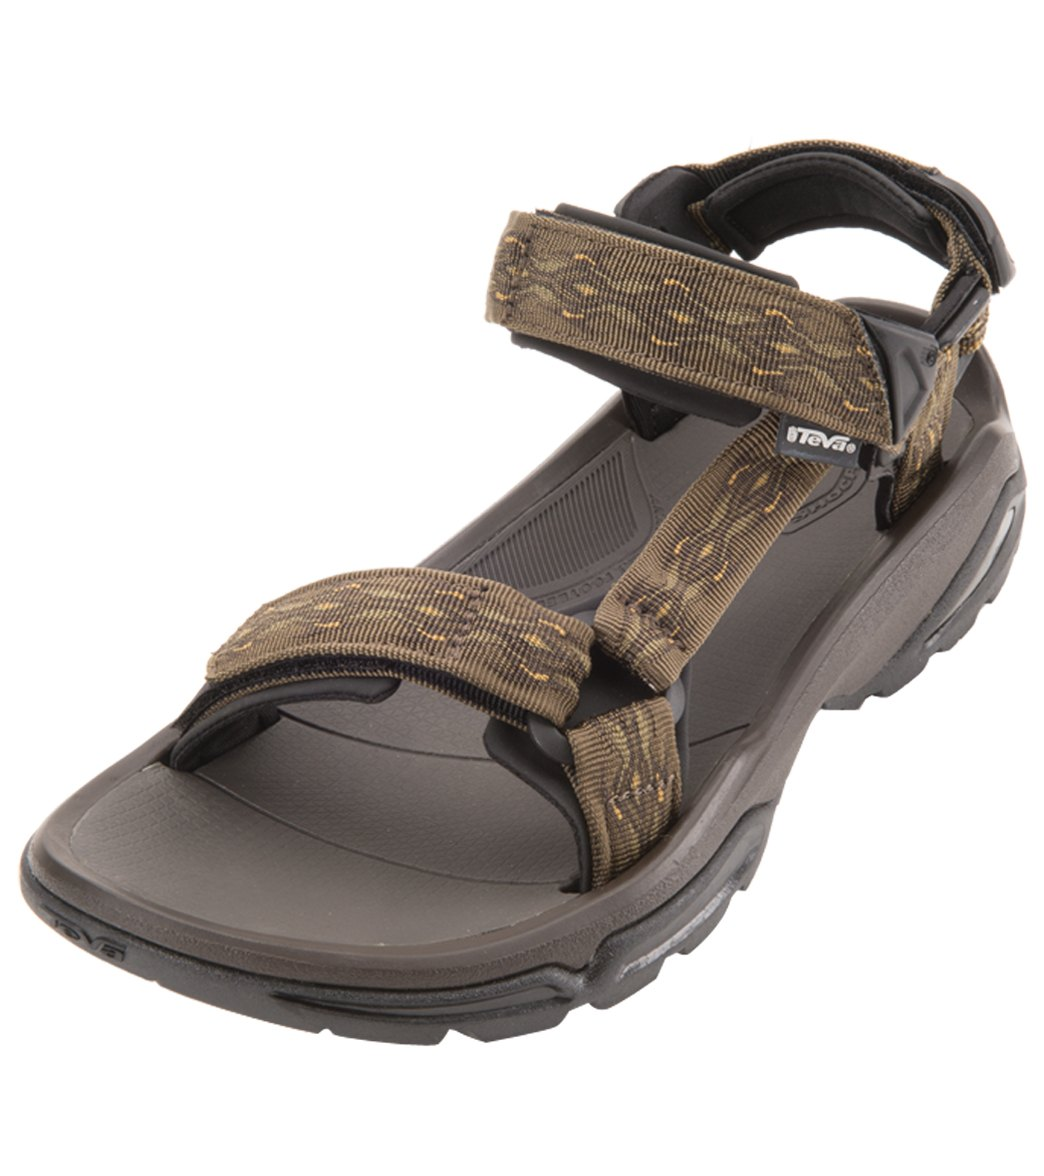 6444407270cfb5 Teva Men s Terra Fi 4 Sandal at SwimOutlet.com - Free Shipping